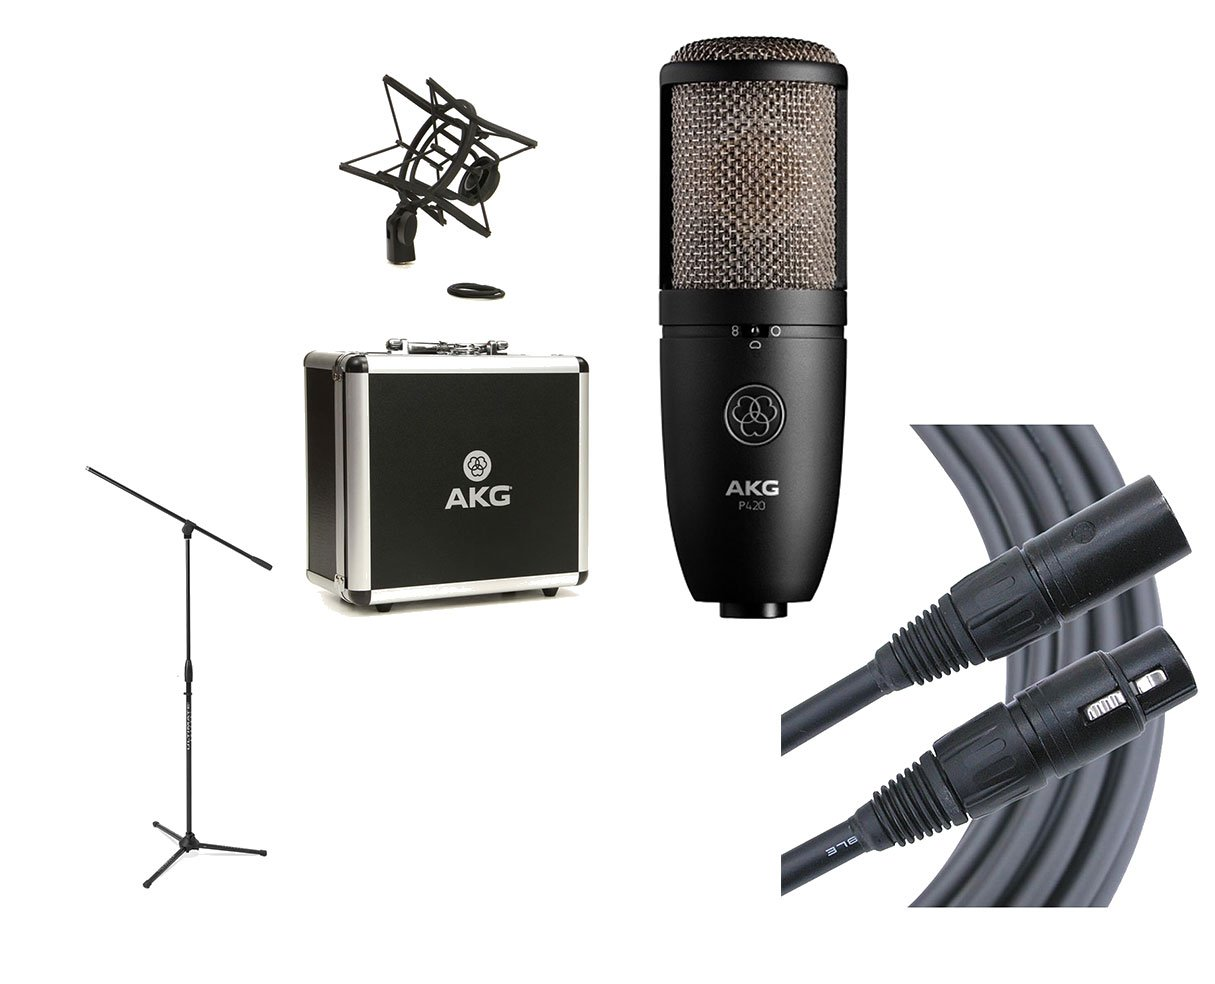 AKG P420 Studio Condenser Microphone + Ultimate Mic Stand + Mogami Cable